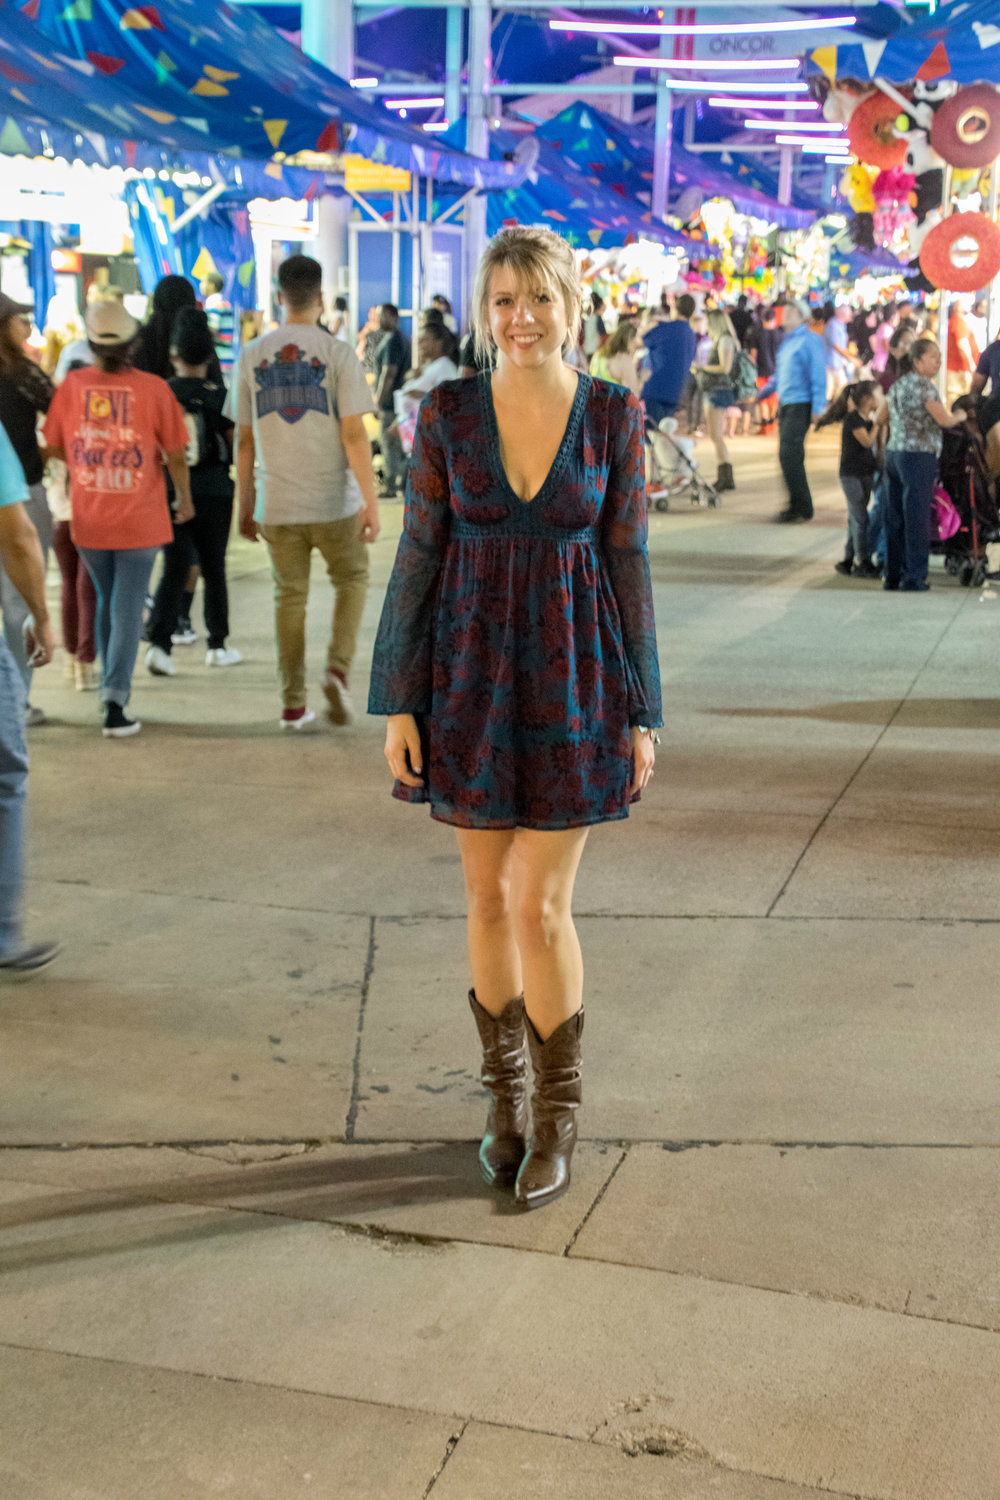 Houston LIfestyle Blogger - Wander Dust Blog - Sarah Jacot-125.jpg